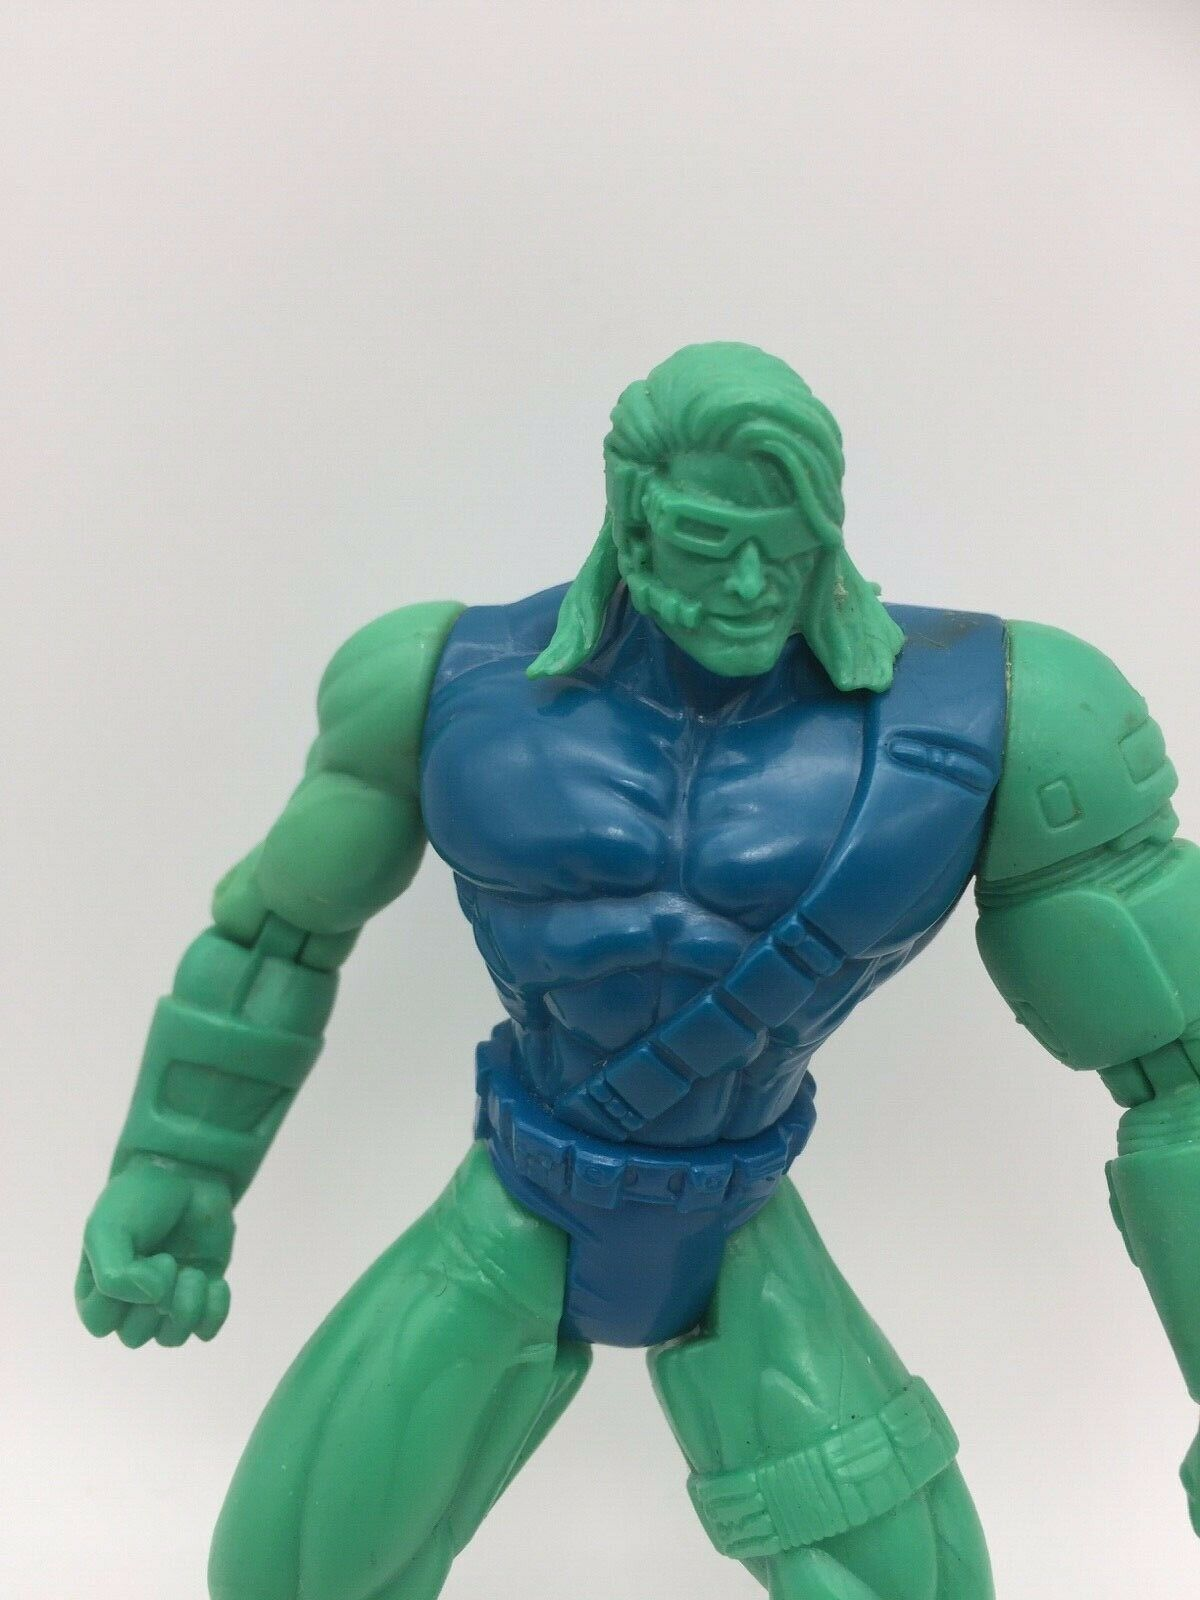 VINTAGE ProssoOTIPO Cyclops Action Figure Toy Toy Toy Biz X-men age of Apocalypse 1995 d4fbff